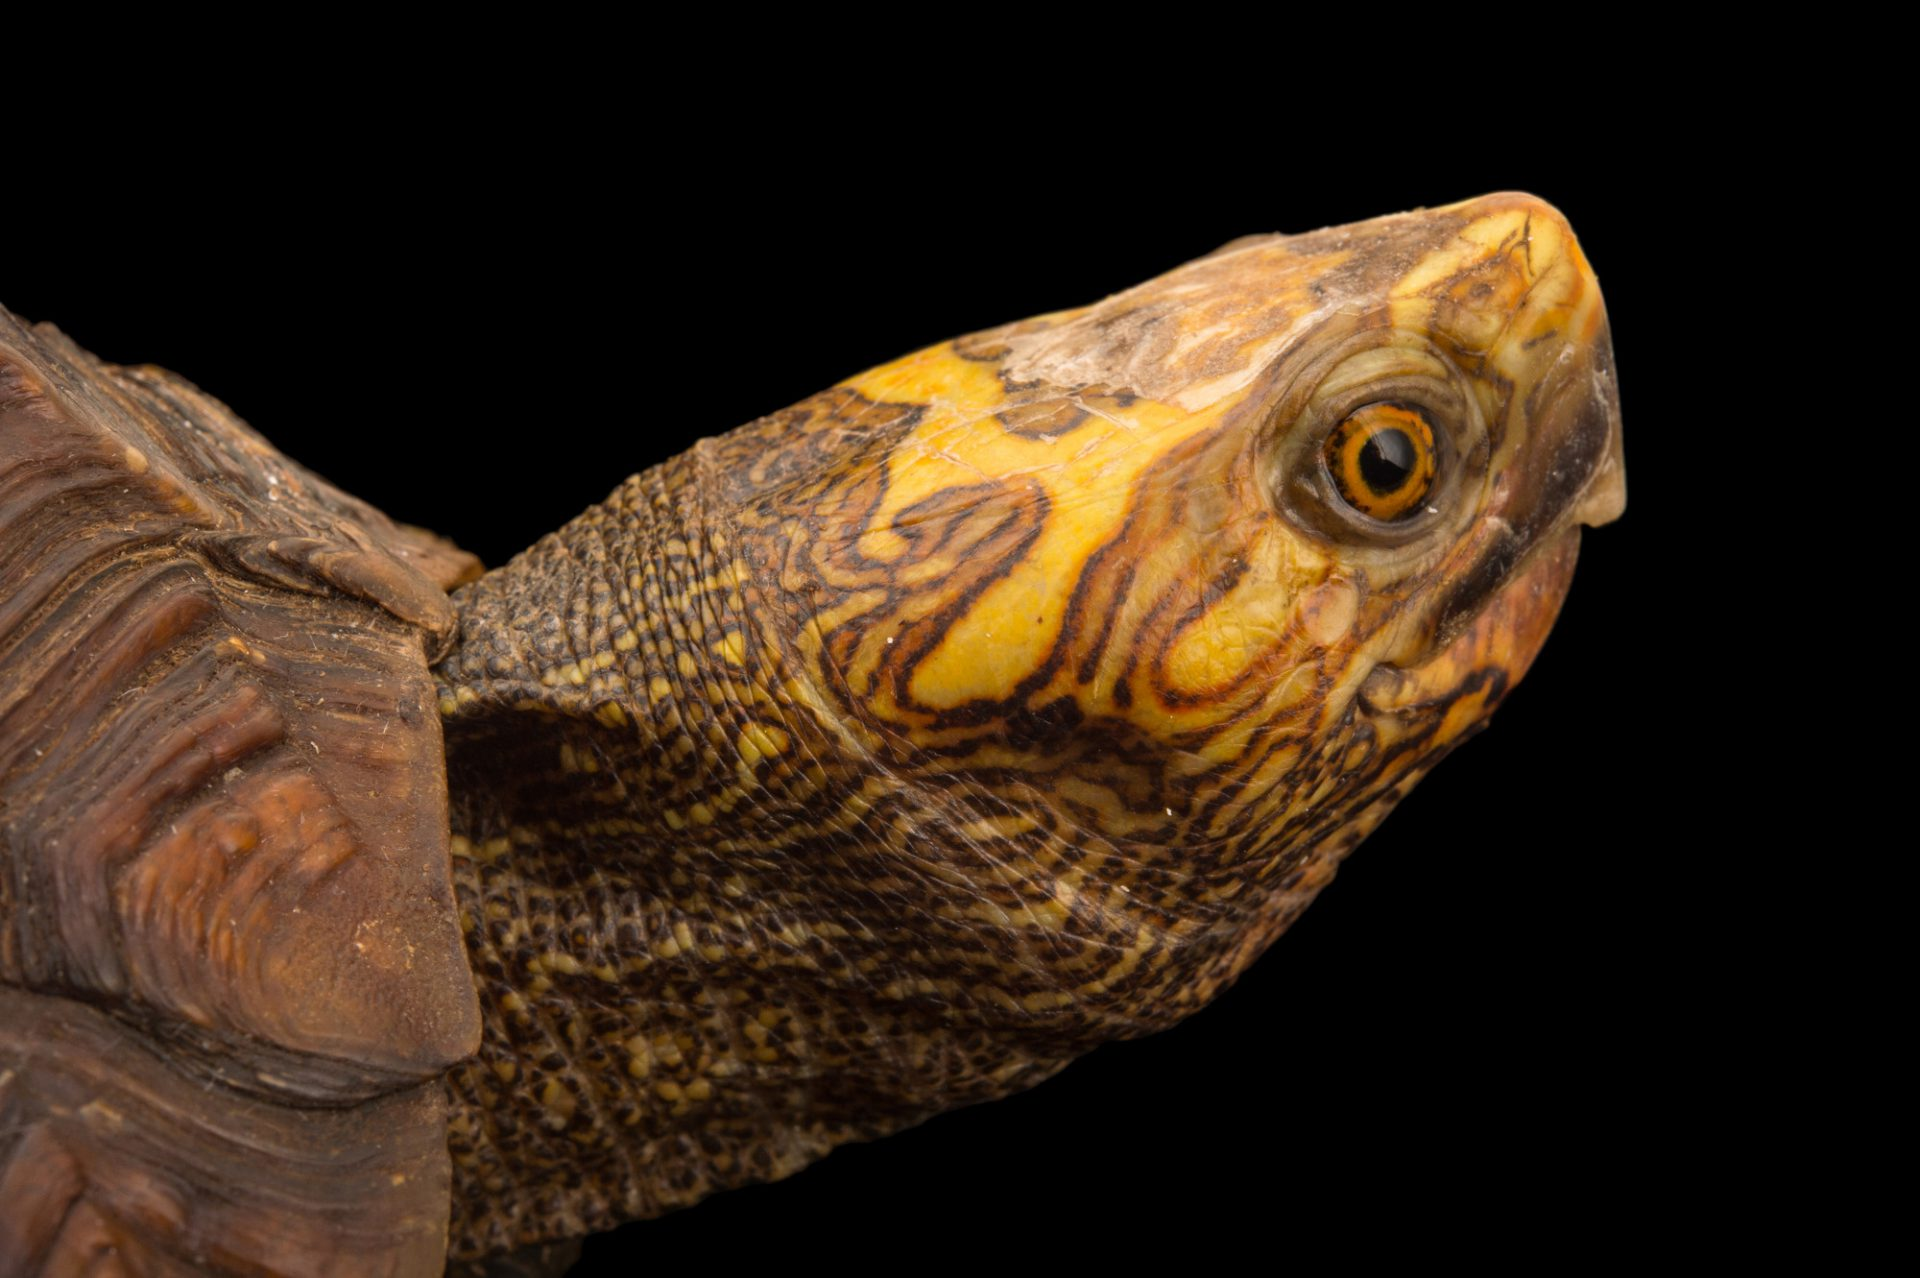 Picture of a Mexican spotted wood turtle (Rhinoclemmys rubida rubida) at the Turtle Conservancy.